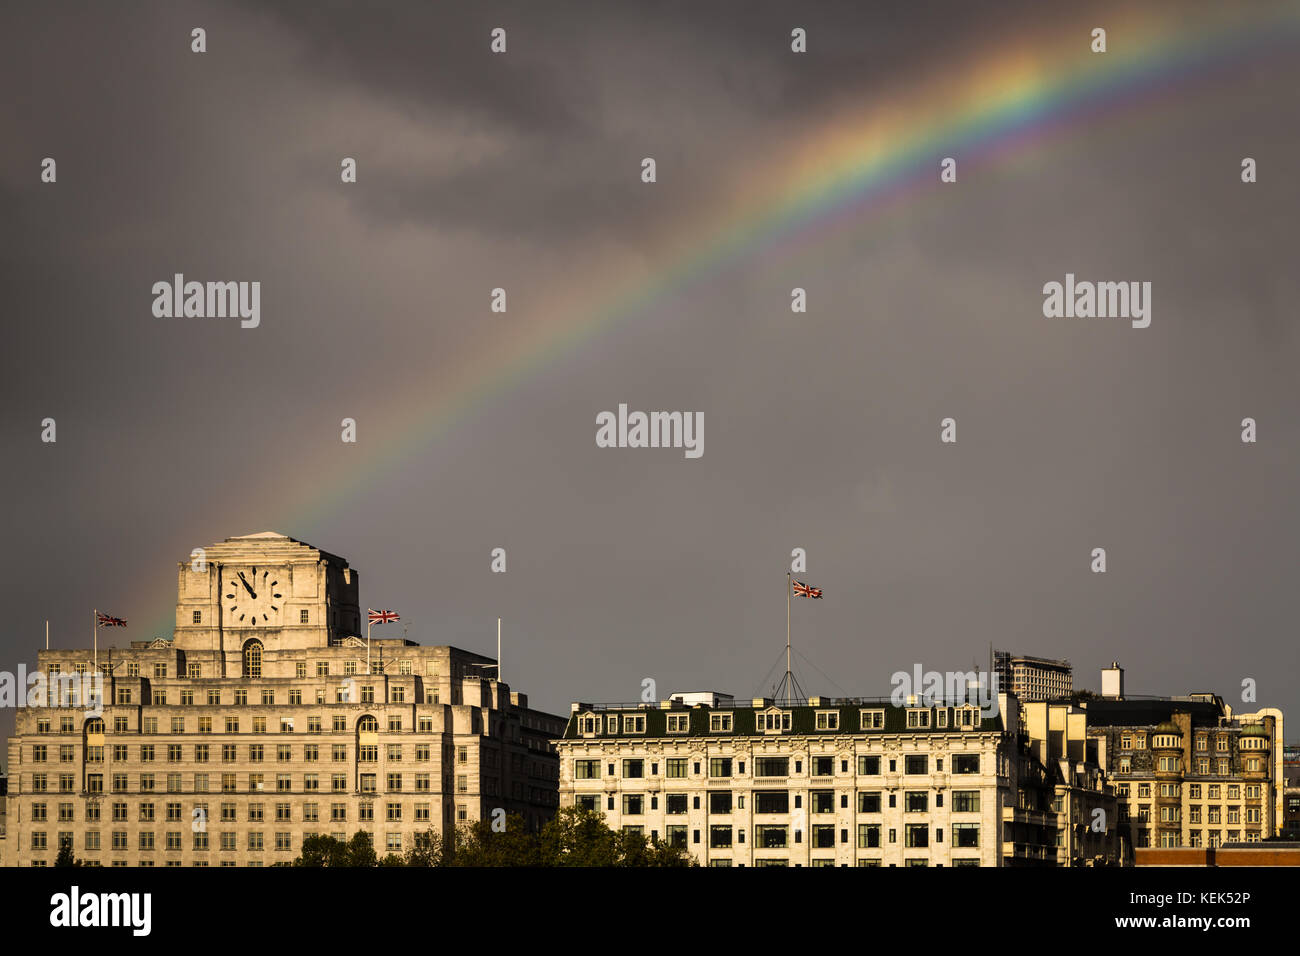 London, UK. 21st Oct, 2017. UK Weather: Storm Brian brings a breaking rainbow over Shell Mex House and Savoy Hotel - Stock Image